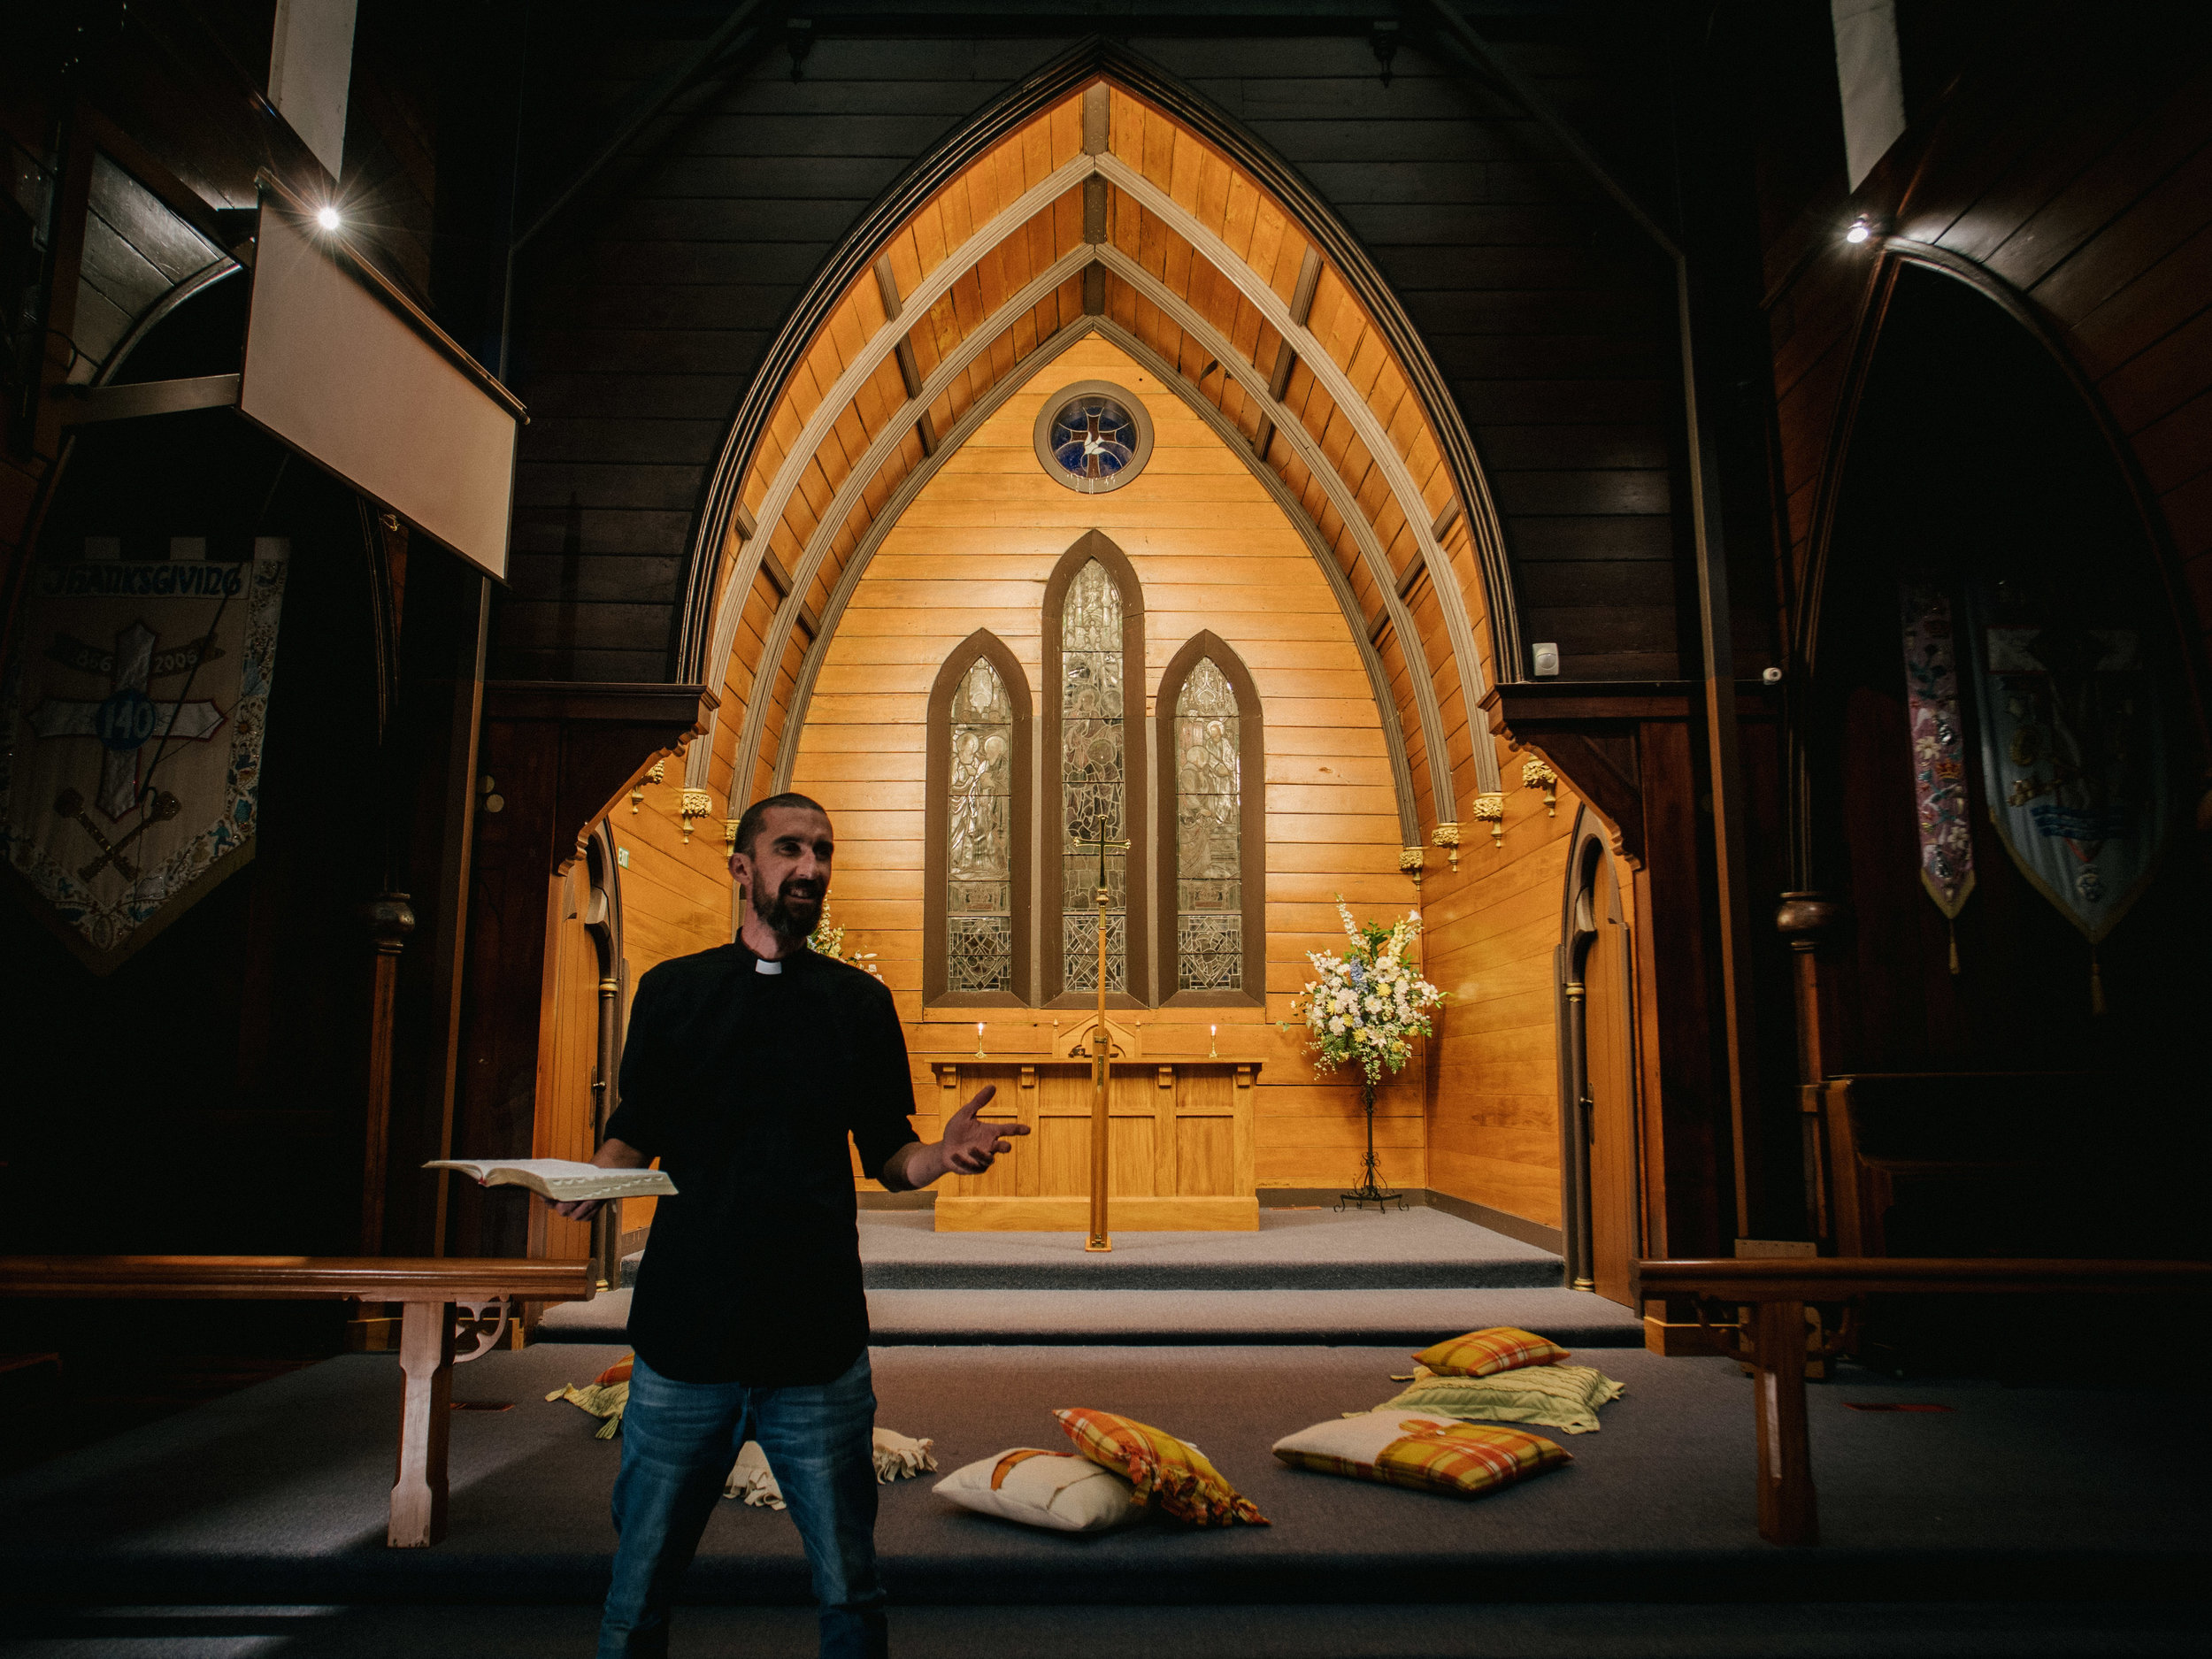 Worship ServiceS - We meet weekly at 5pm on a Sunday for a simple short service followed by a shared meal. This includes children and youth programmes during the service.There is also a weekly traditional Wednesday Eucharist service at 1pm that uses the Anglican NZ Prayer Book.